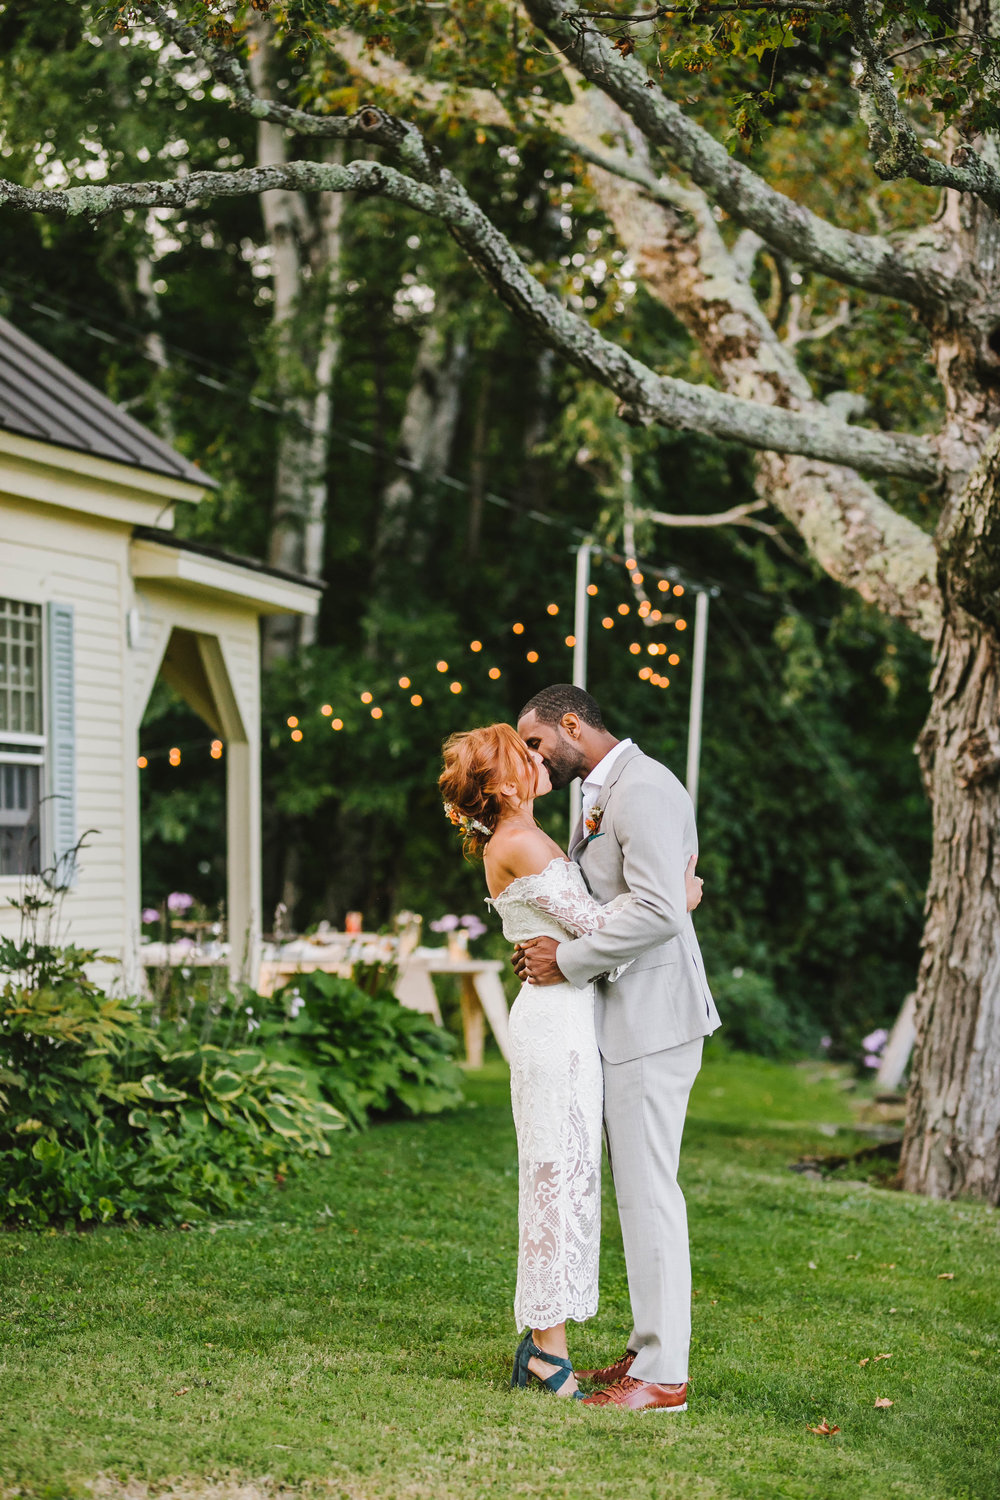 Vermont back yard farm wedding West winds farm vingtage casual unconventional - Emily Tebbetts Photography-24.jpg